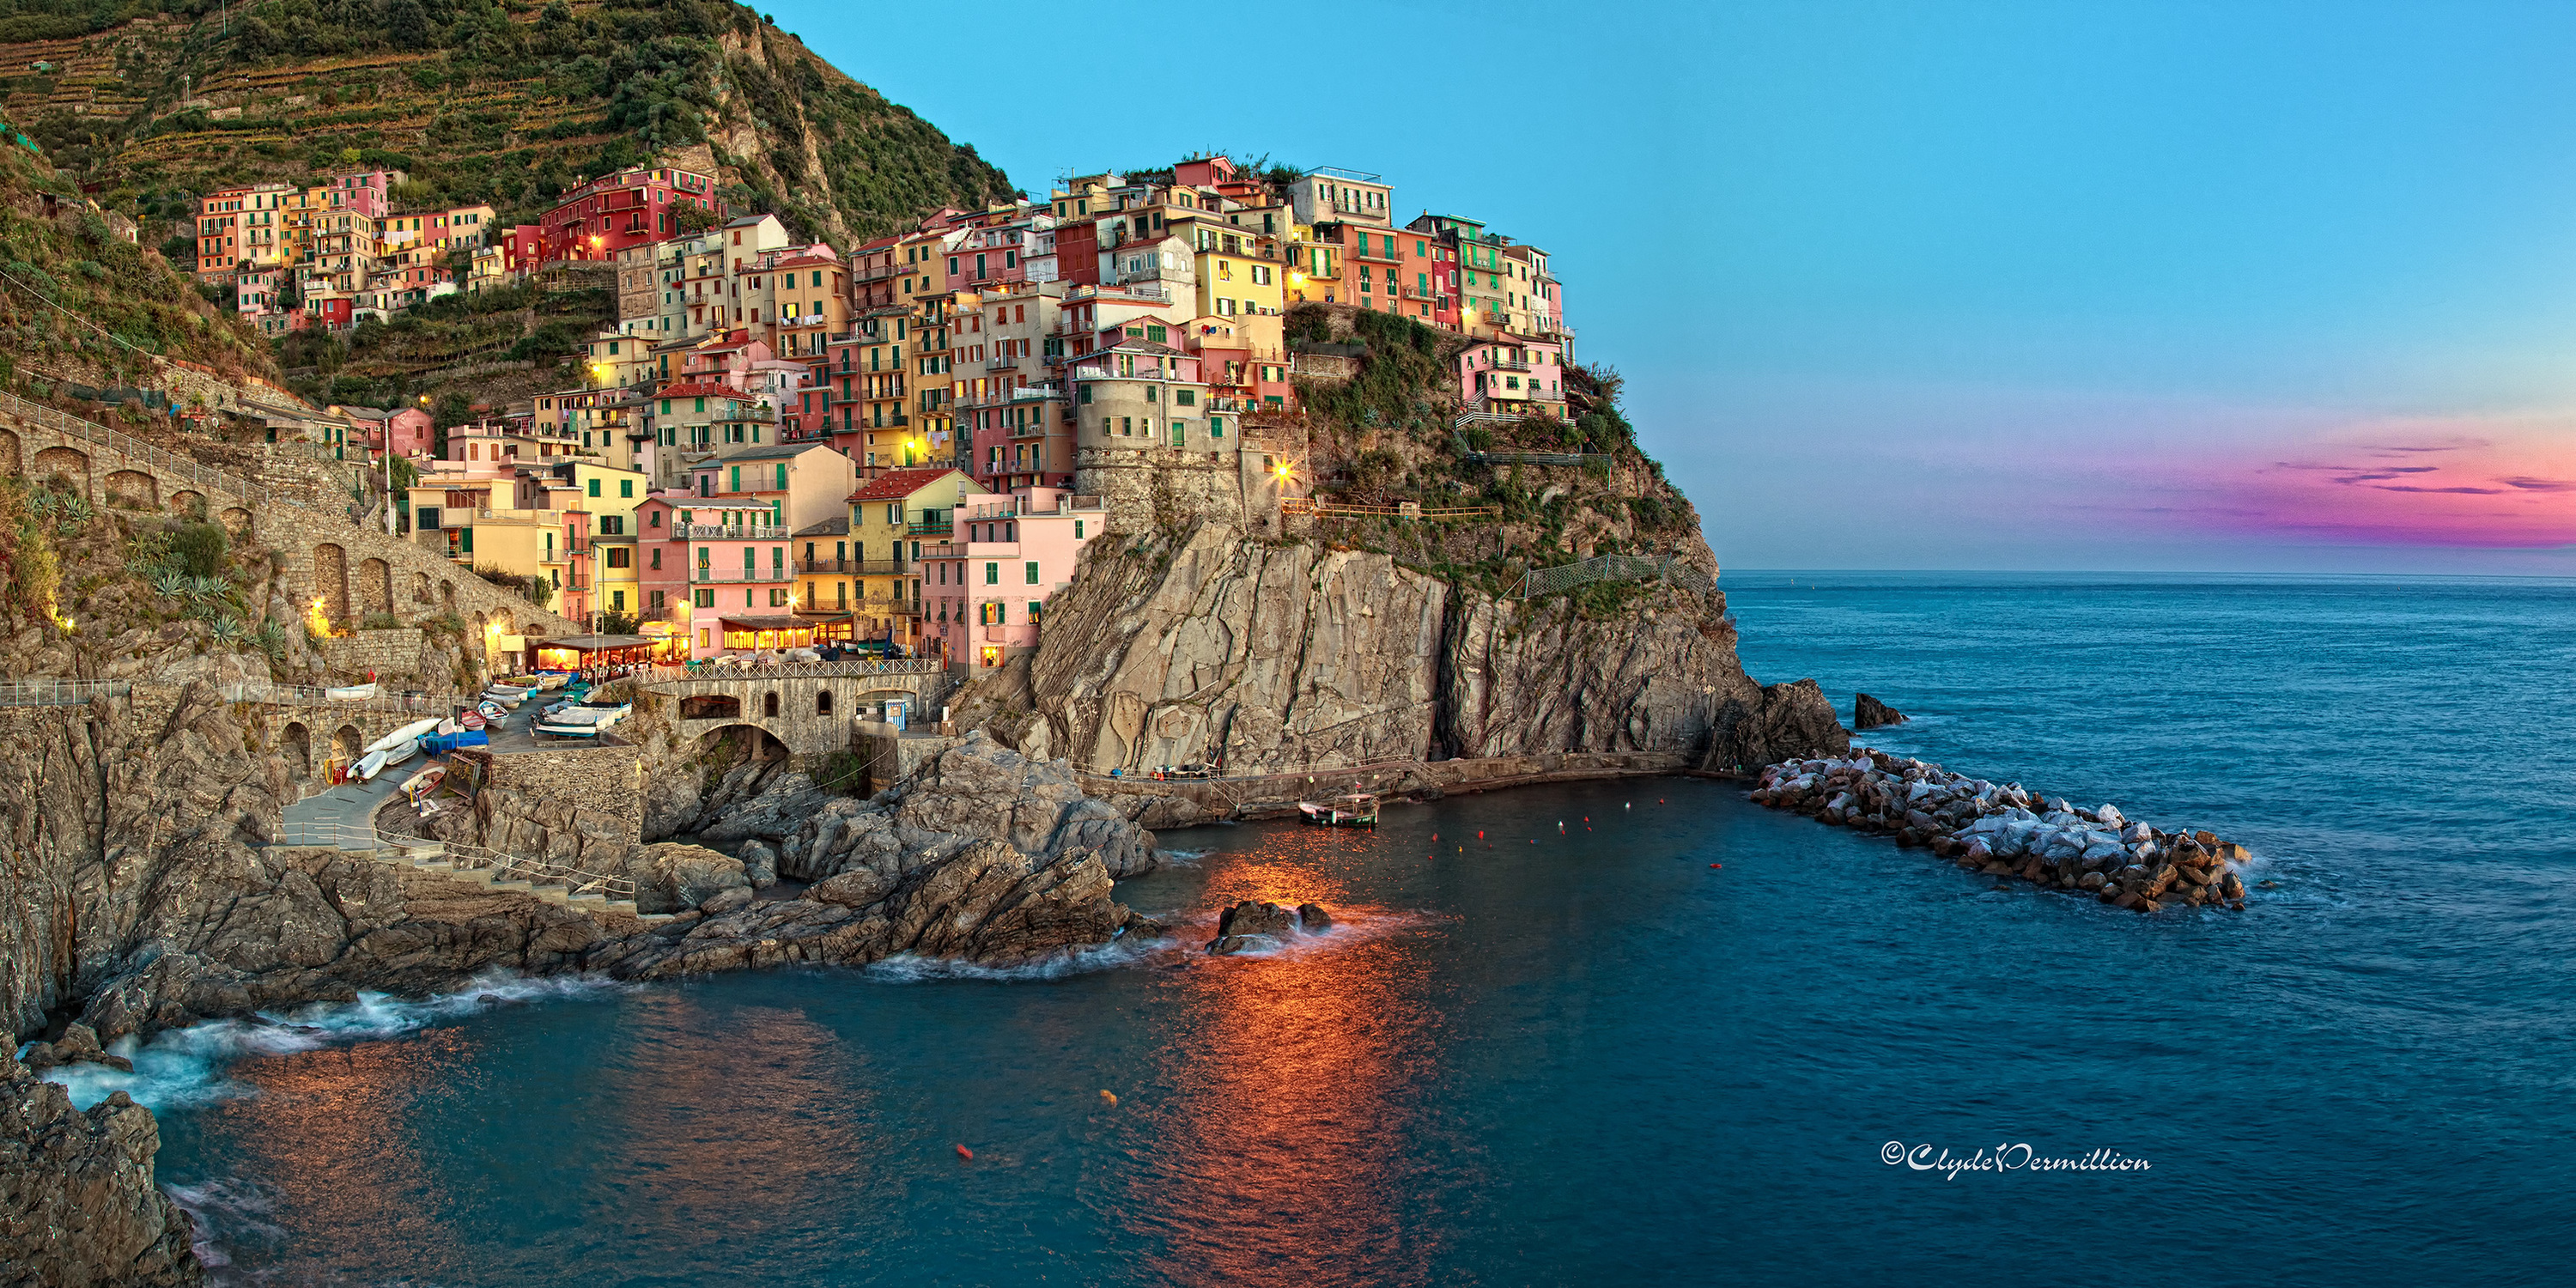 Manarola-panarama-941-finished-copy21x42-copy_dpuwao